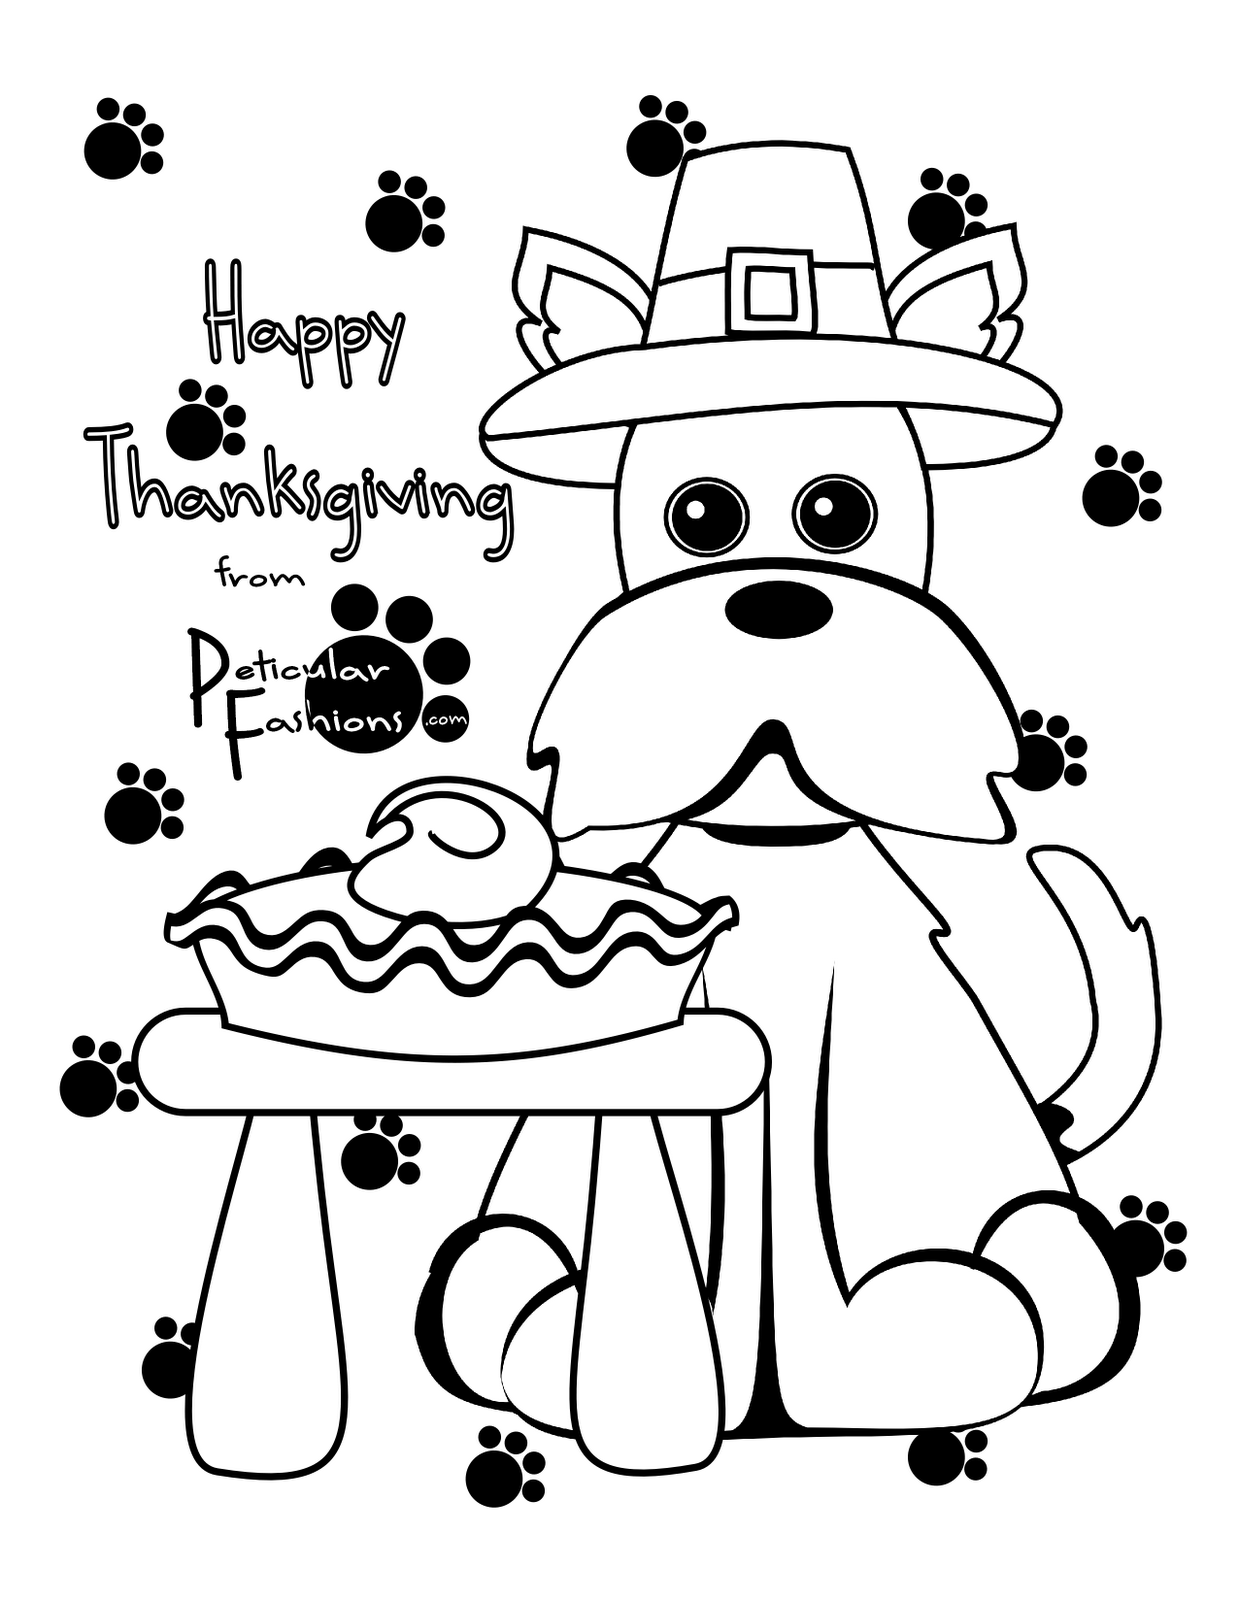 Printable coloring sheets of thanksgiving - Free Preschool Thanksgiving Coloring Pages